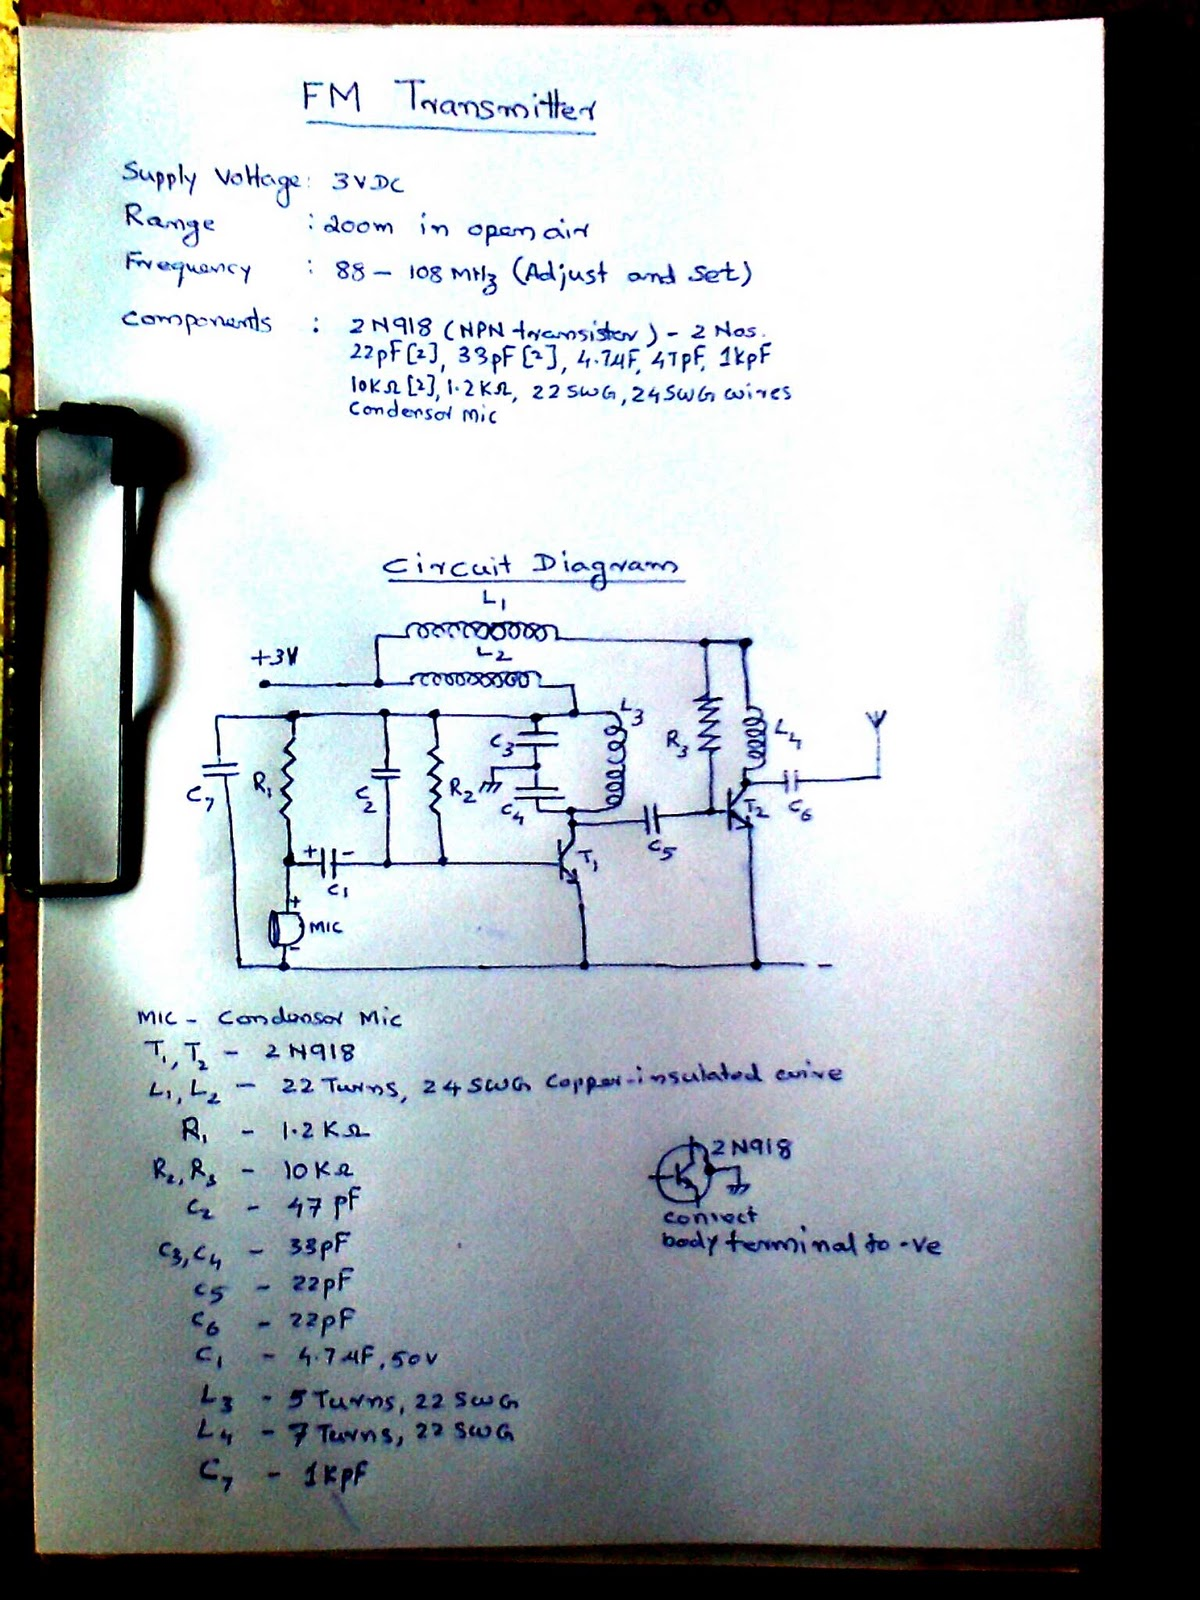 Fm Transmitter Circuits And Schematics Low Power Hobby Electronics